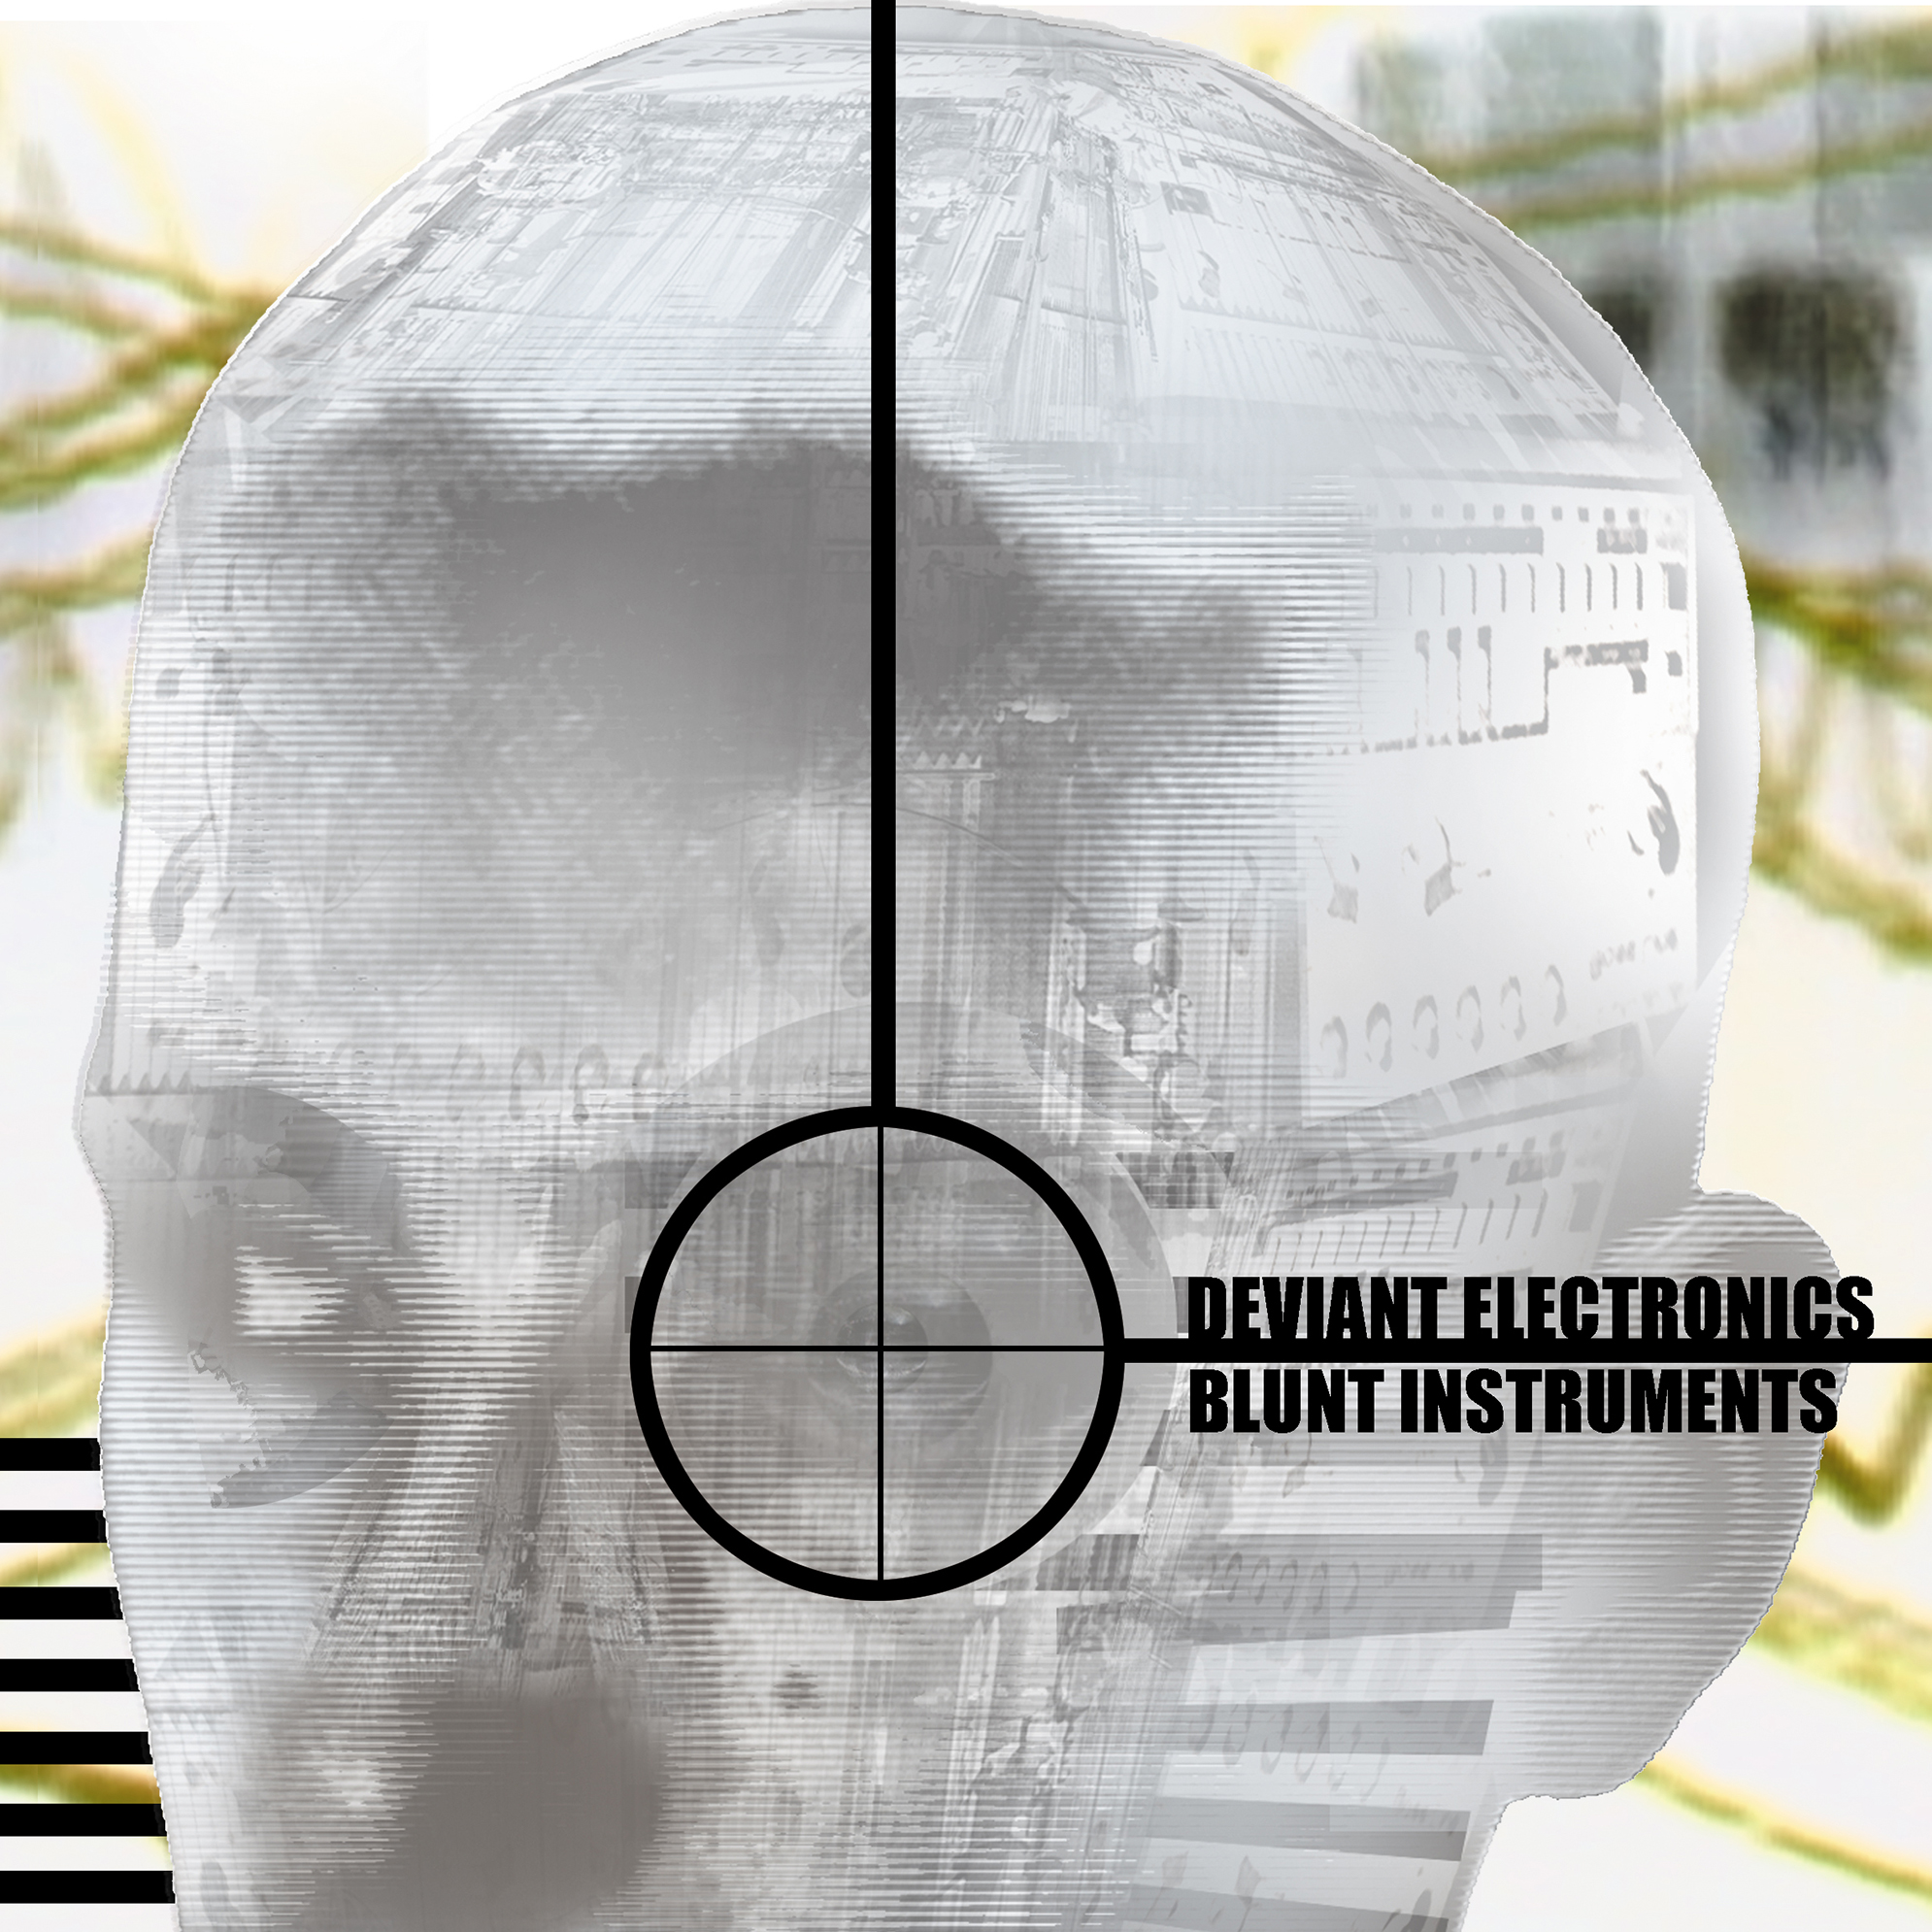 Deviant Electronics - Blunt Instruments - BLUE ROOM RELEASED 2000